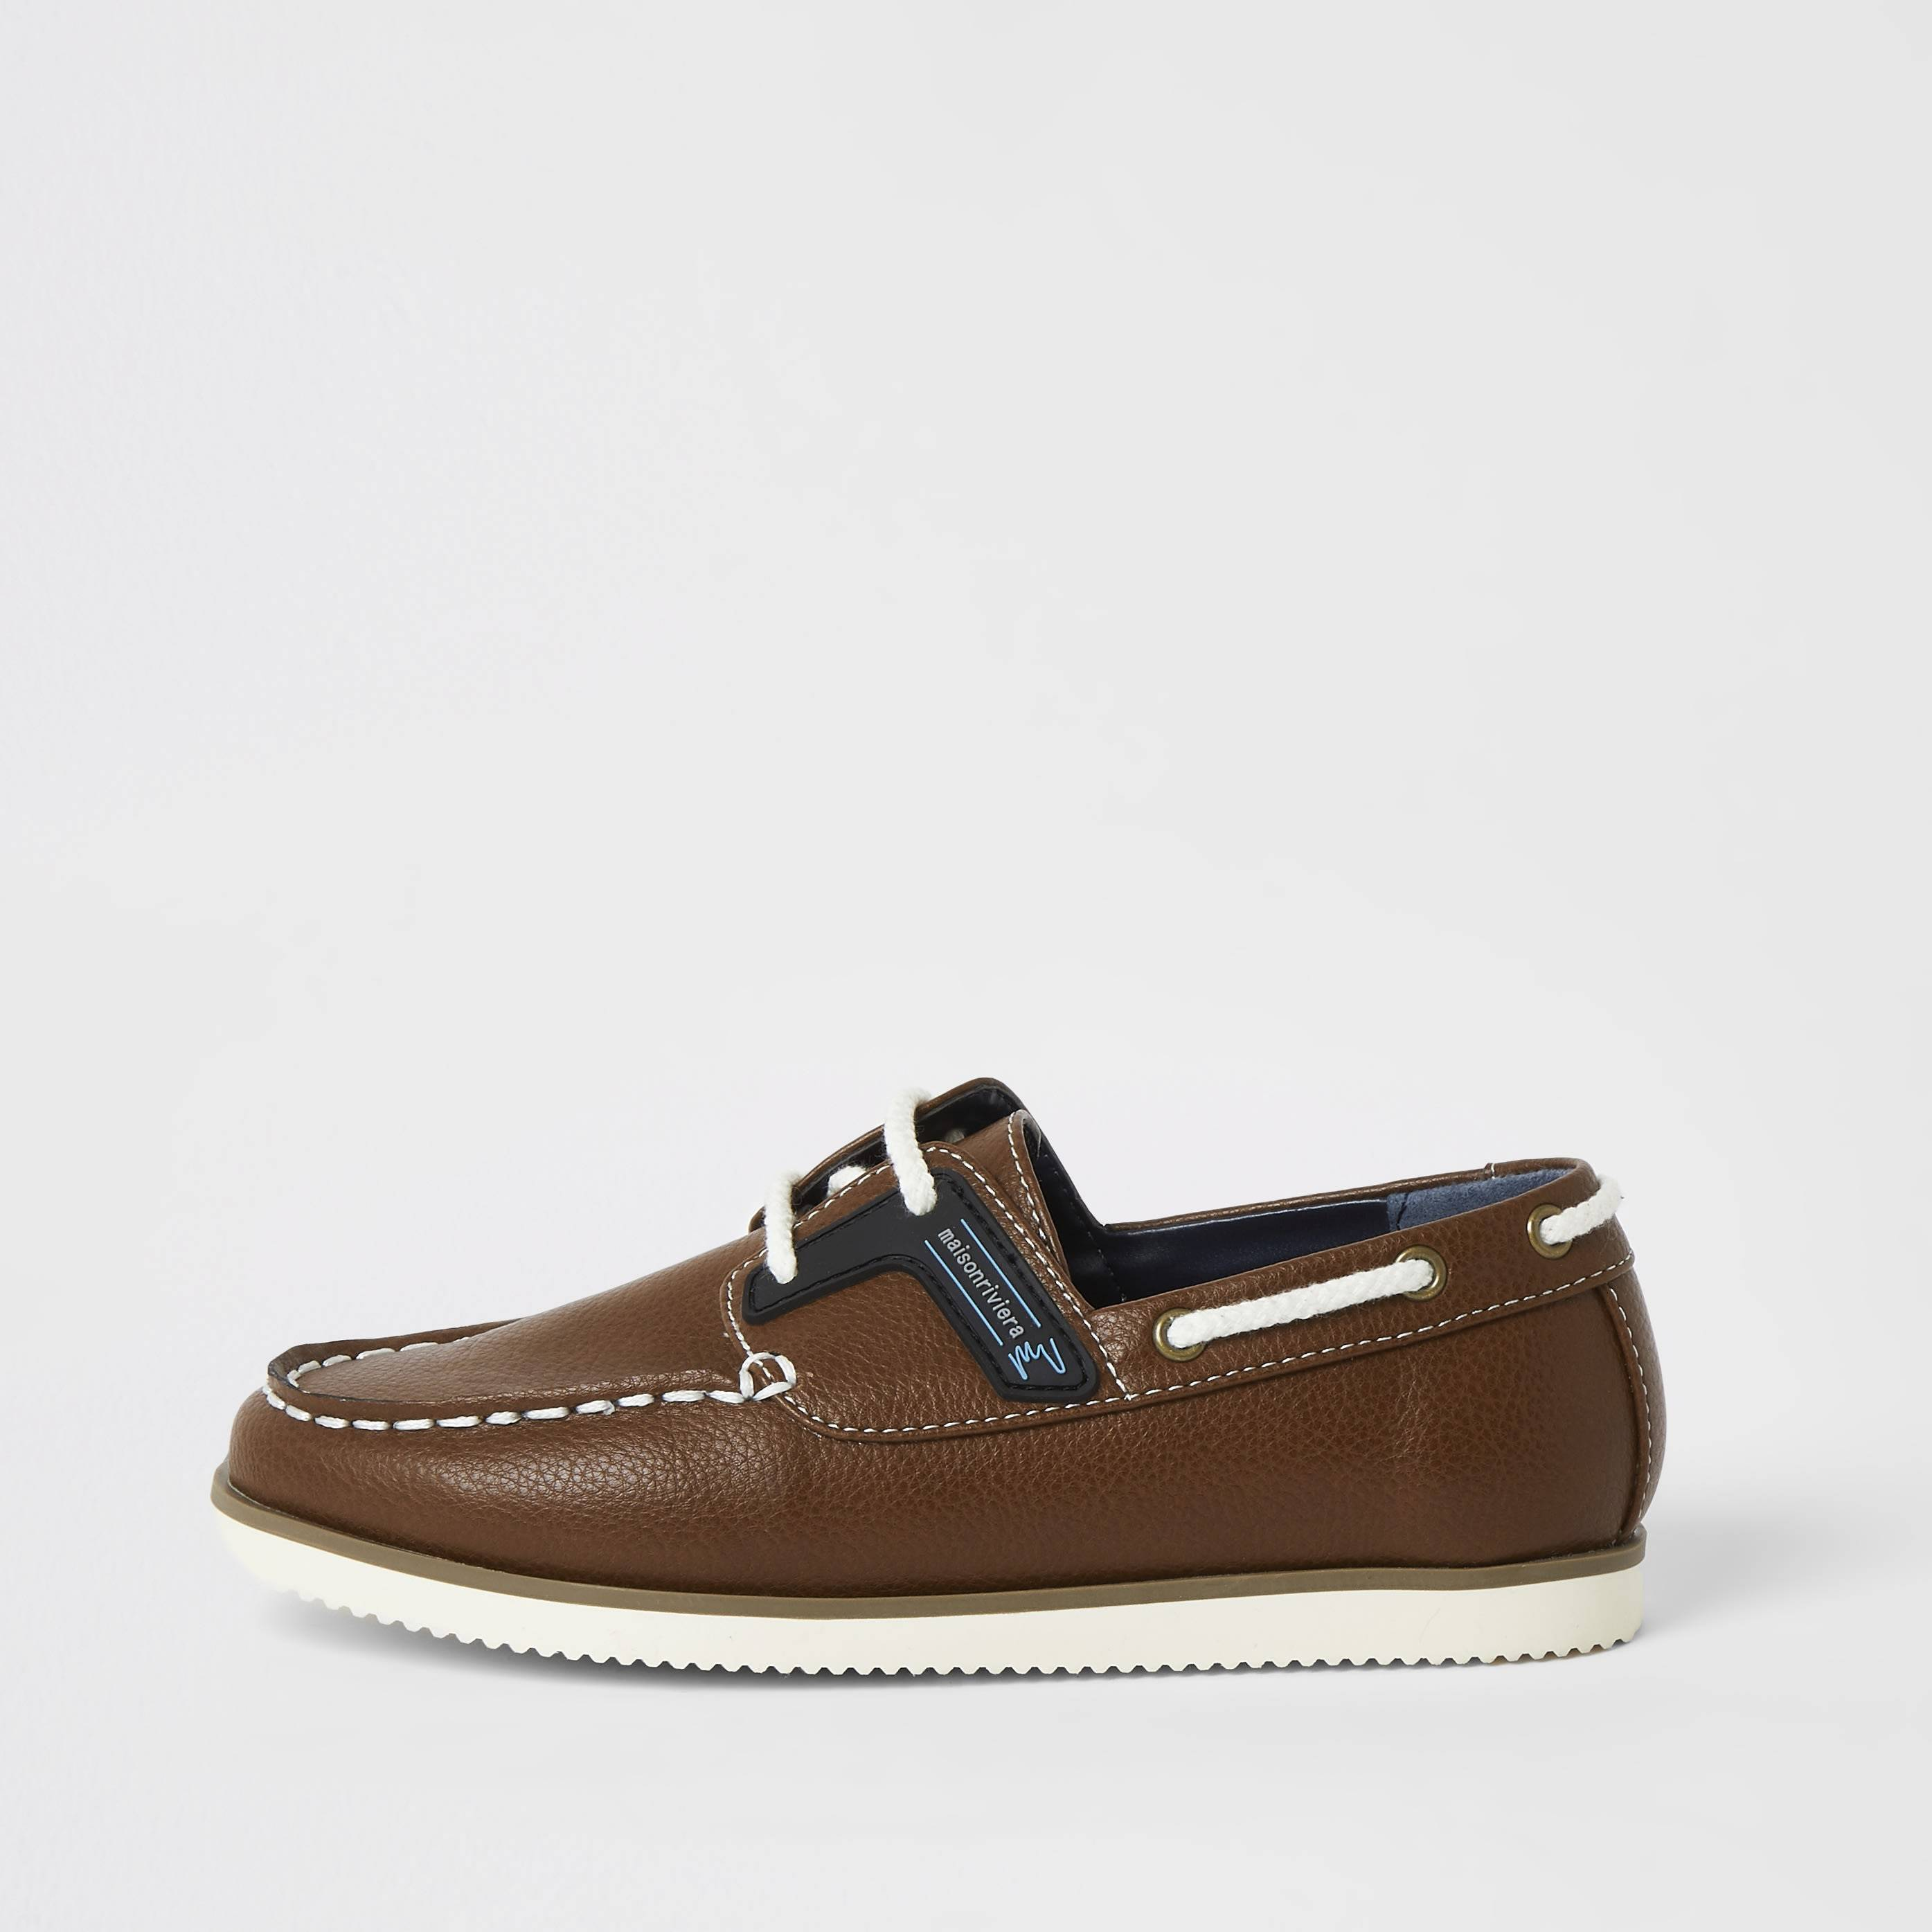 river island Boys light Brown lace-up boat shoes (c13)